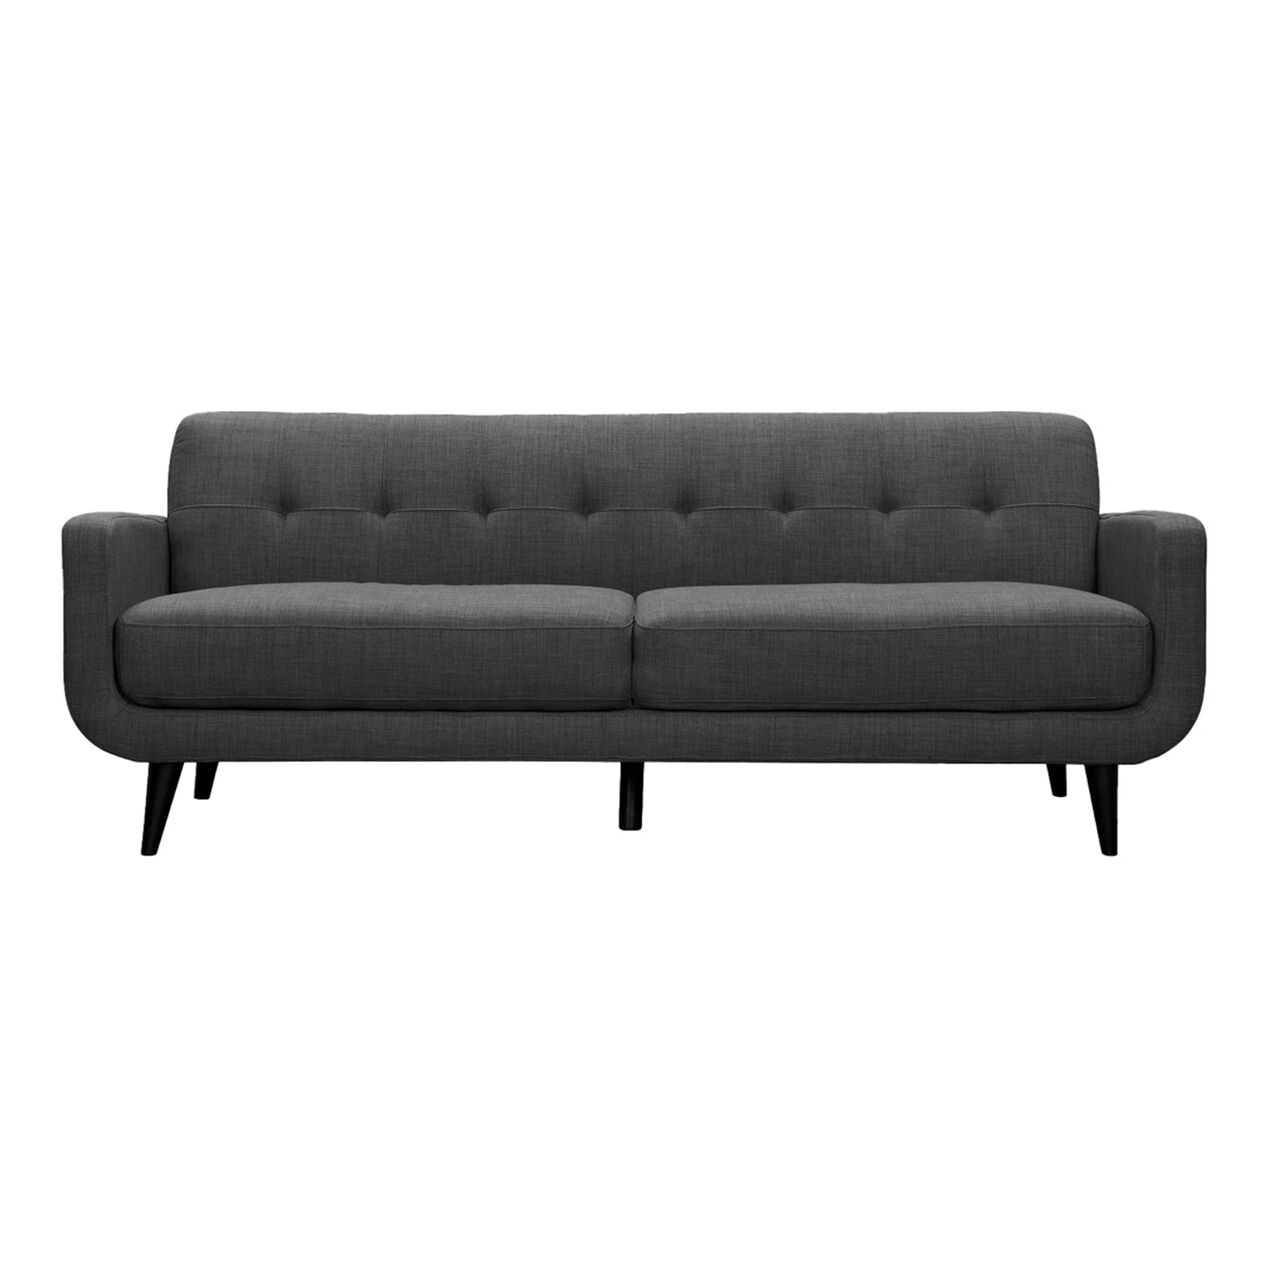 Hadley Sofa Heirloom Charcoal Gray At Home 15609 The Olive House Sofabed Fabric Lux Grey